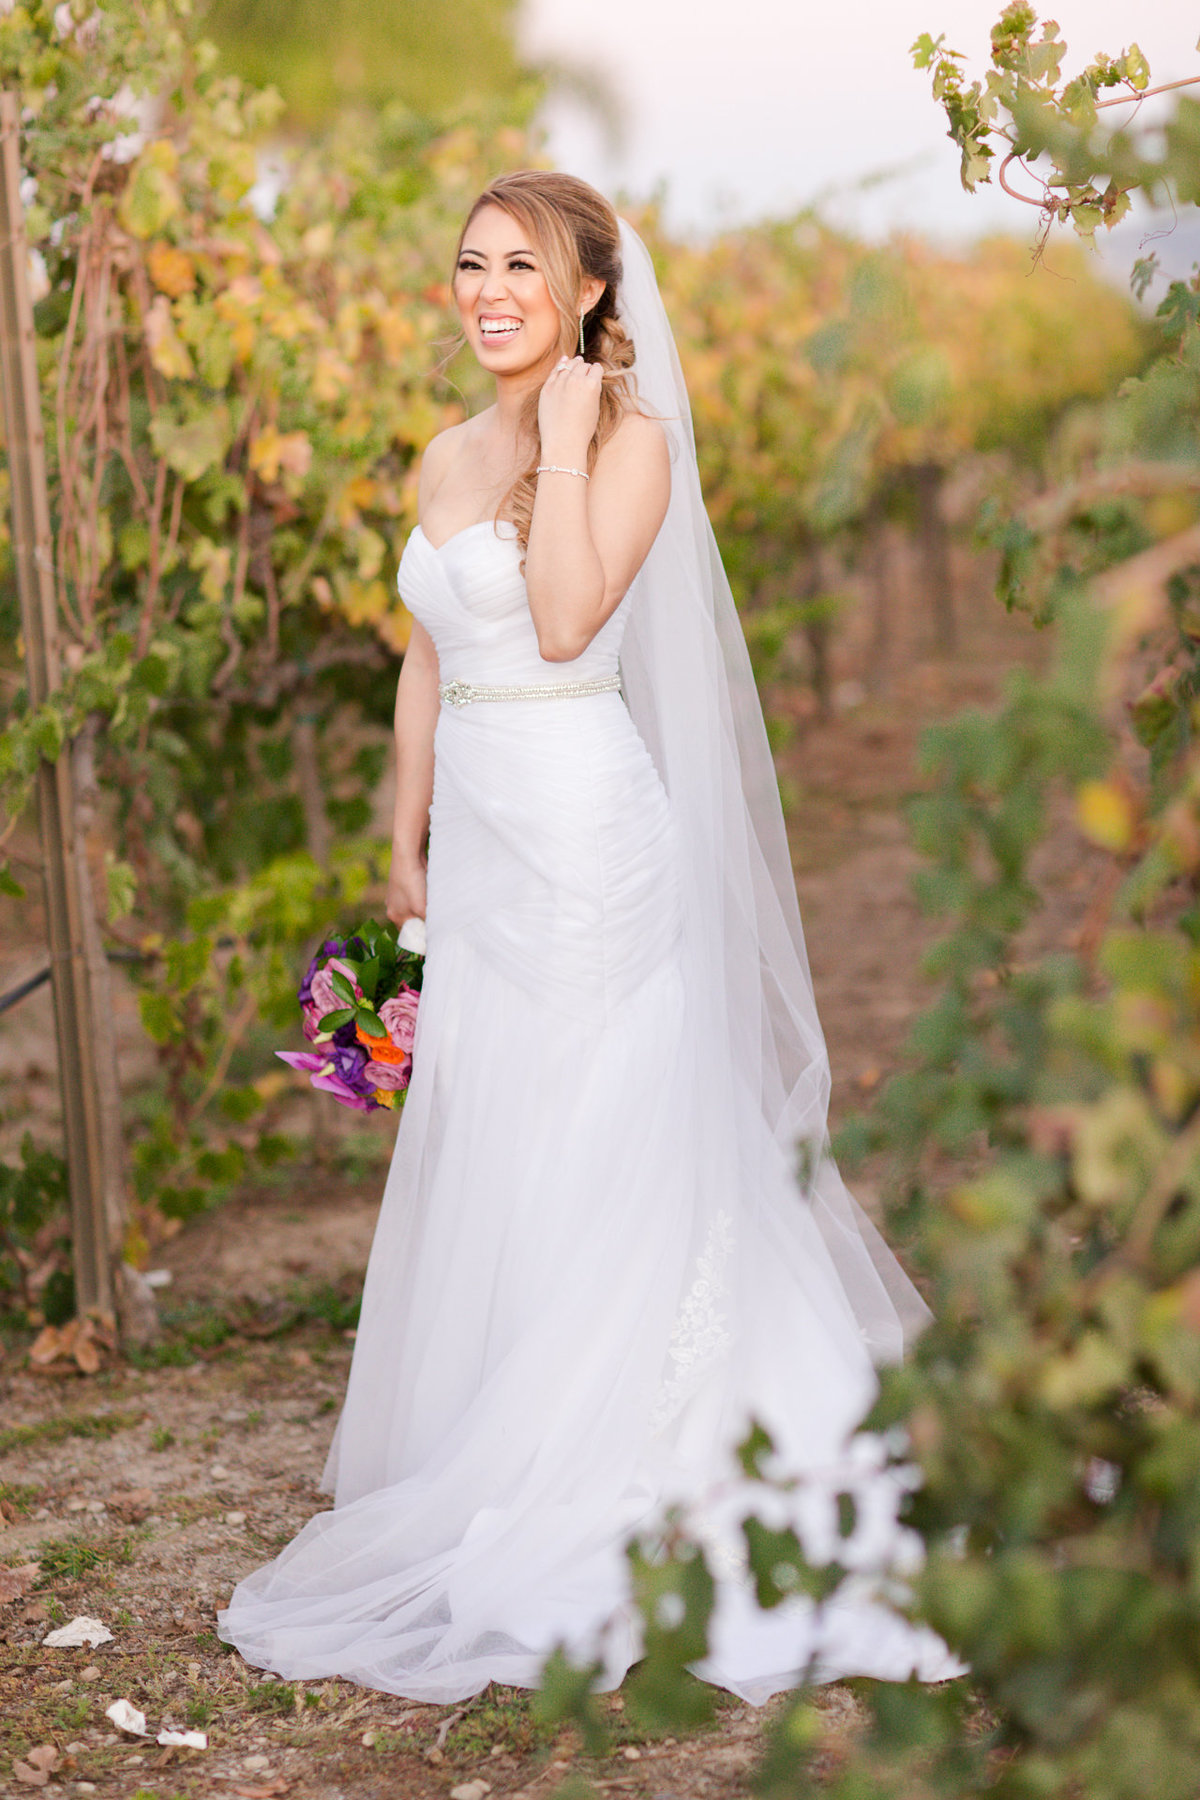 Stunning bride soaking up the sunset in the villa de amore vineyards by matty fran photography